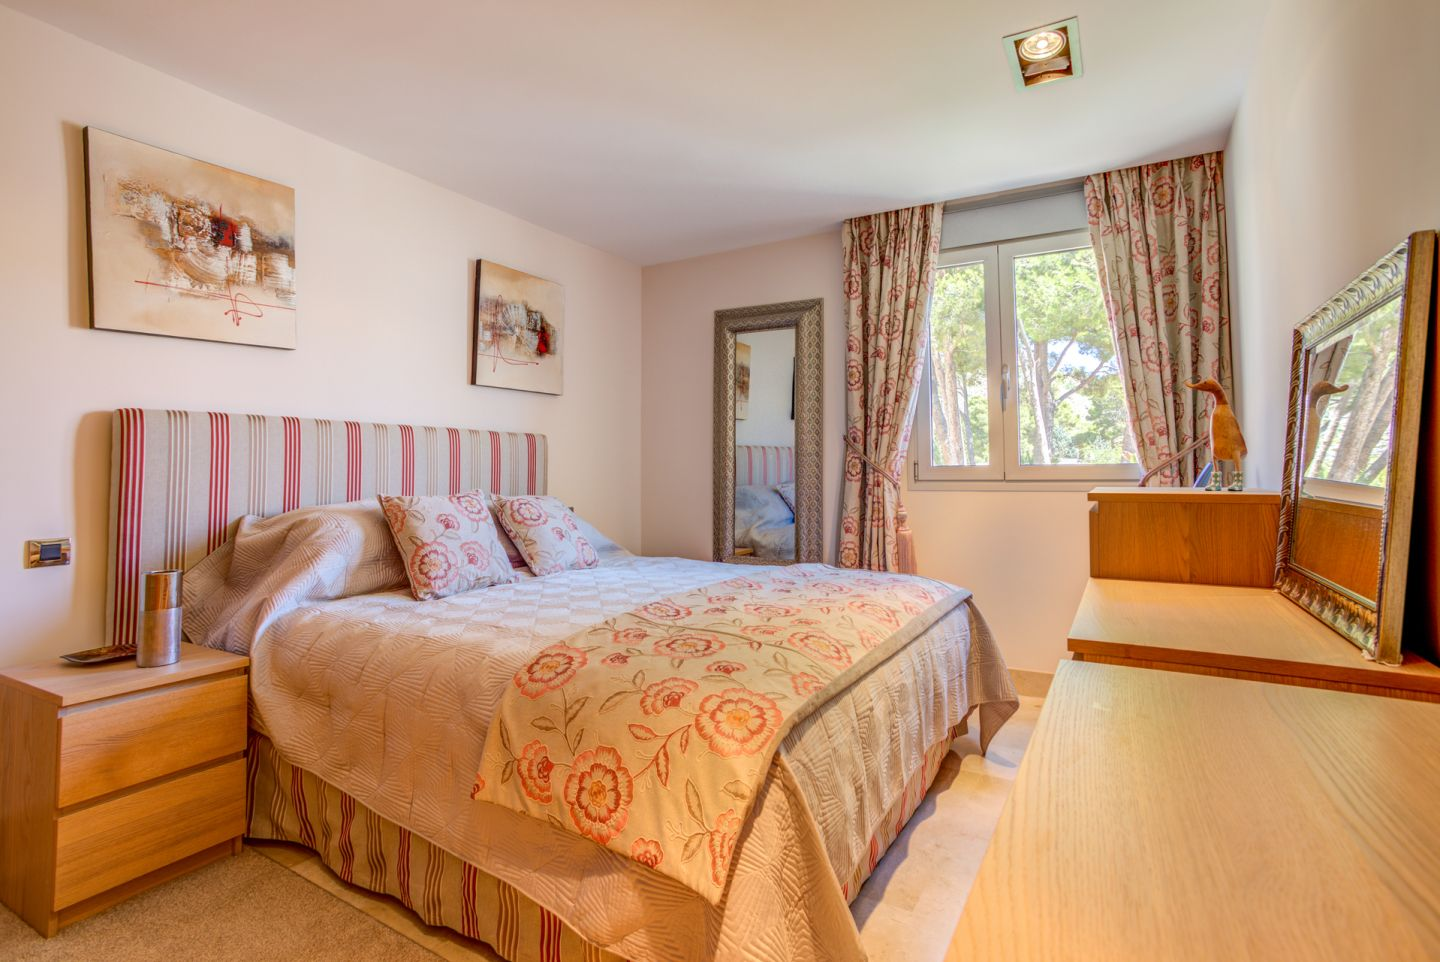 3 Bed Apartment for sale in Puerto Pollensa 9